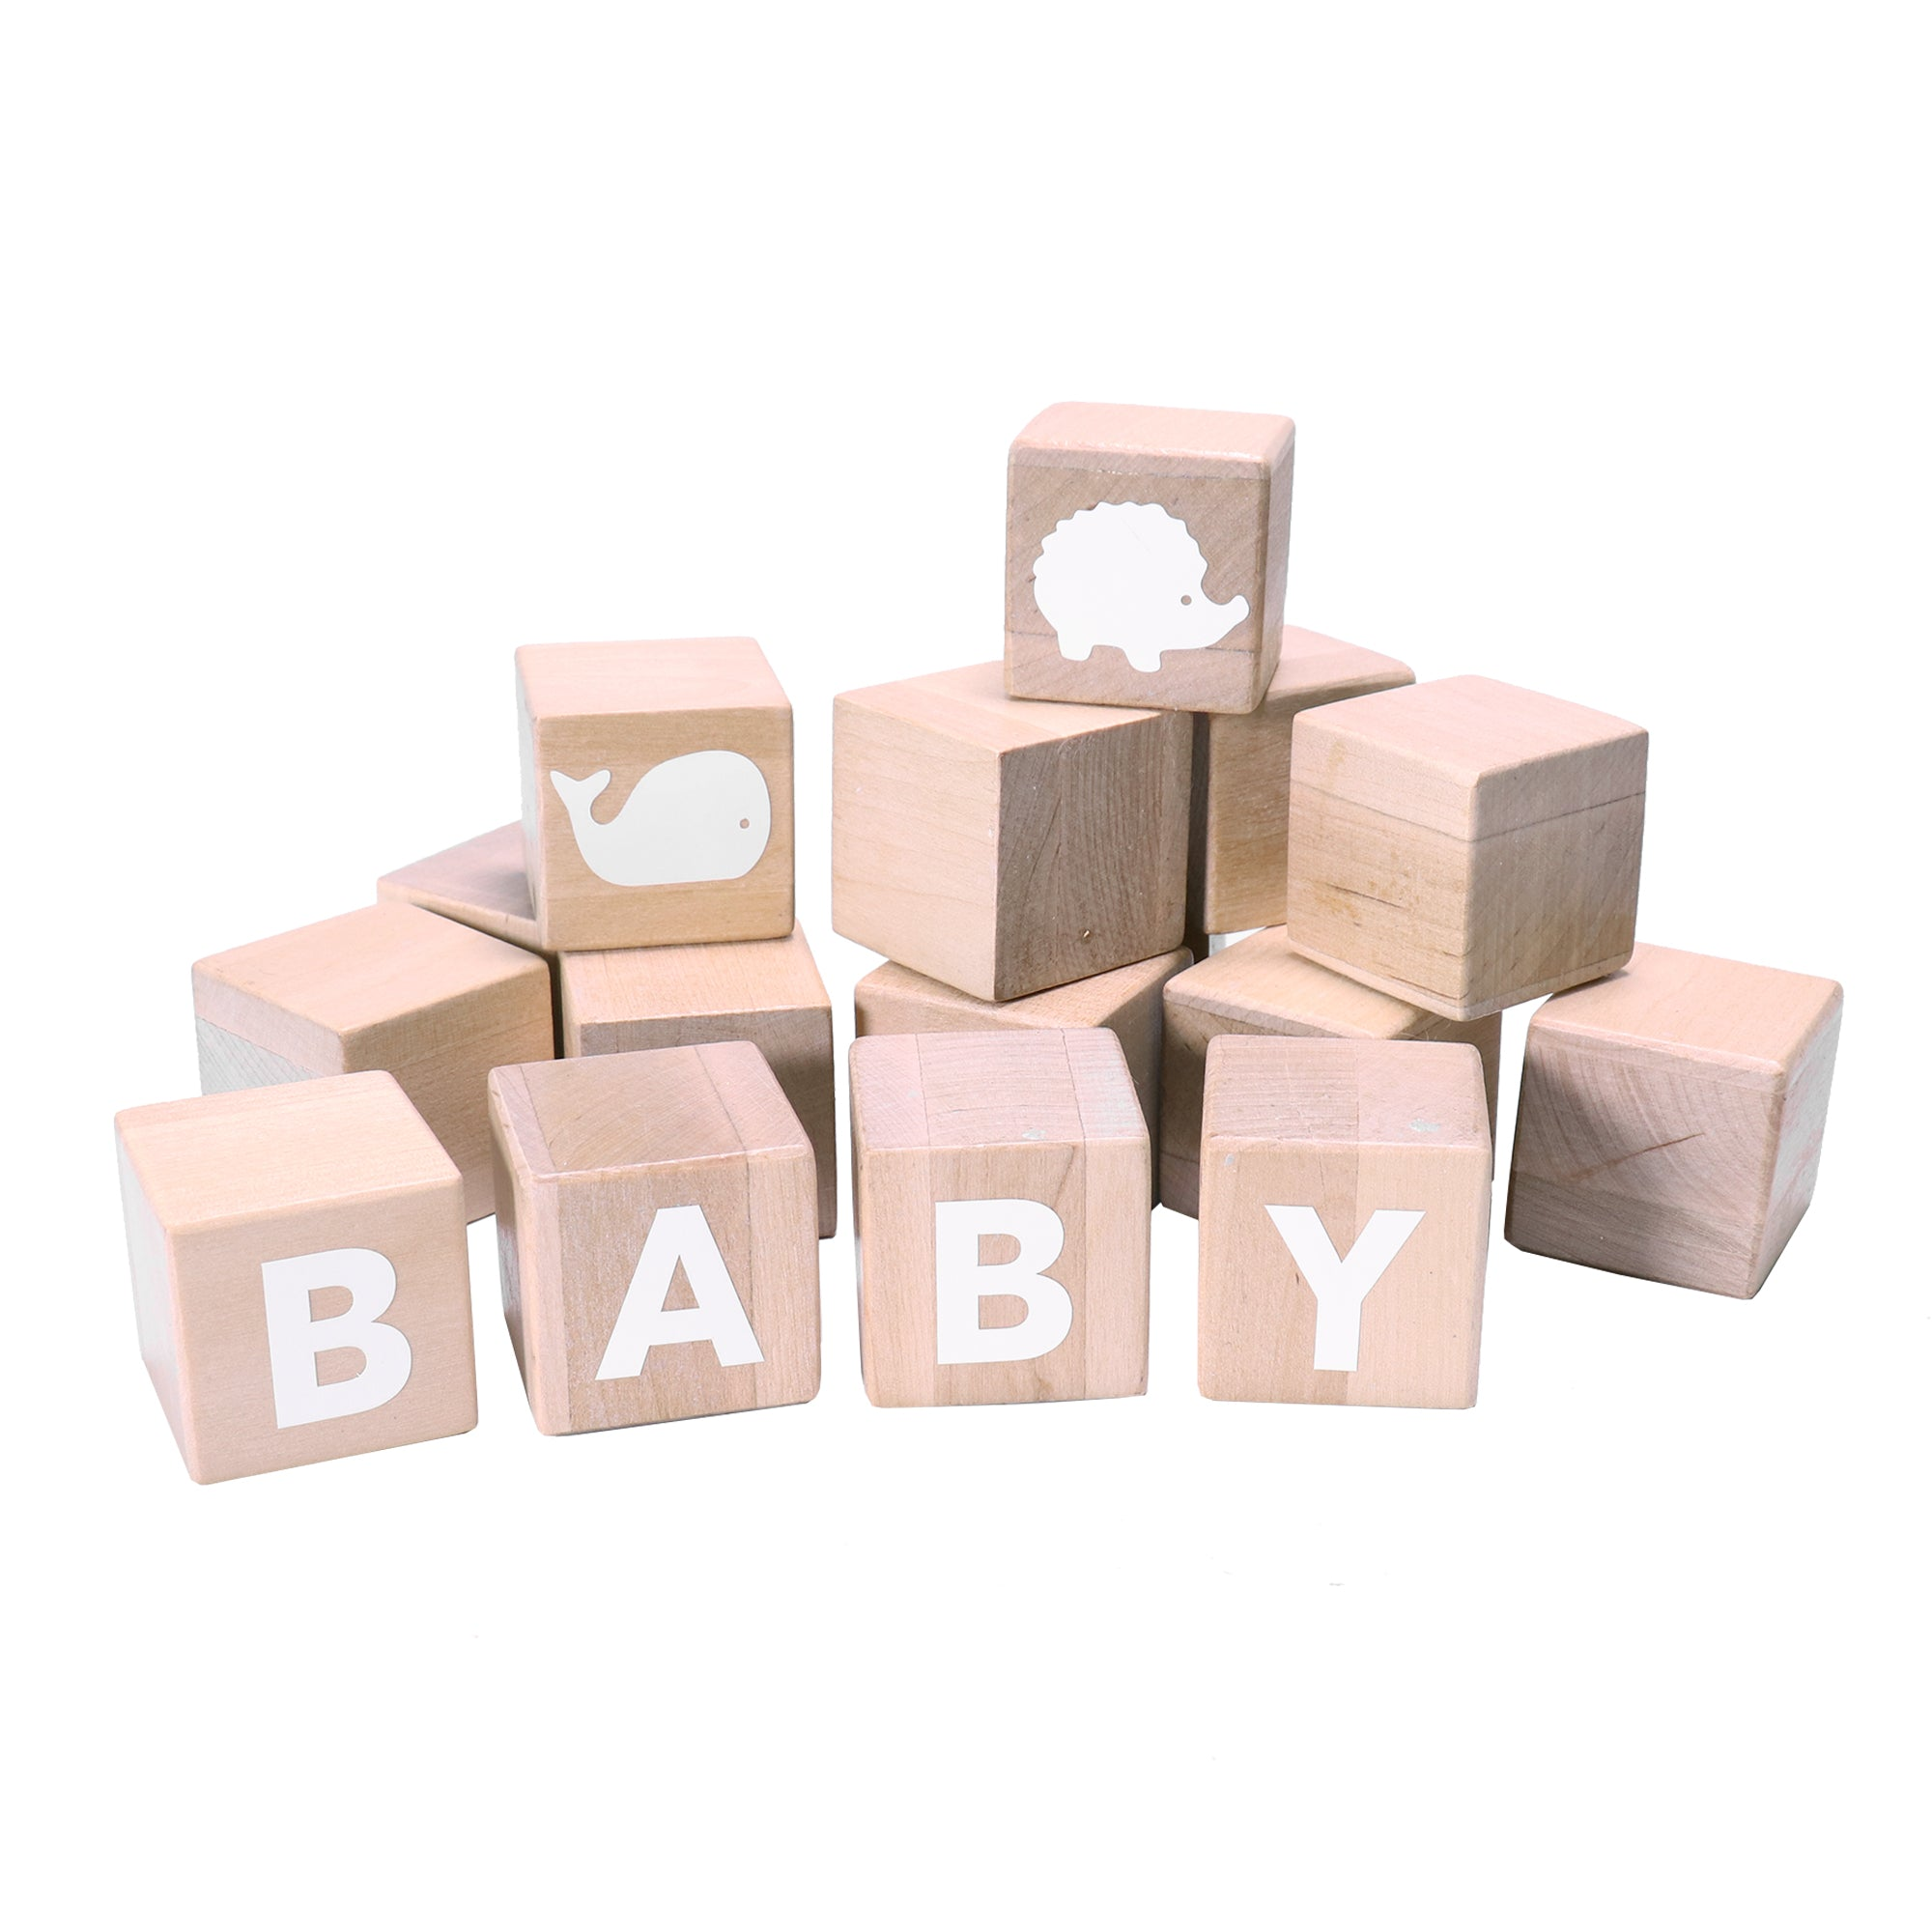 Alphabet Blocks with white stickers